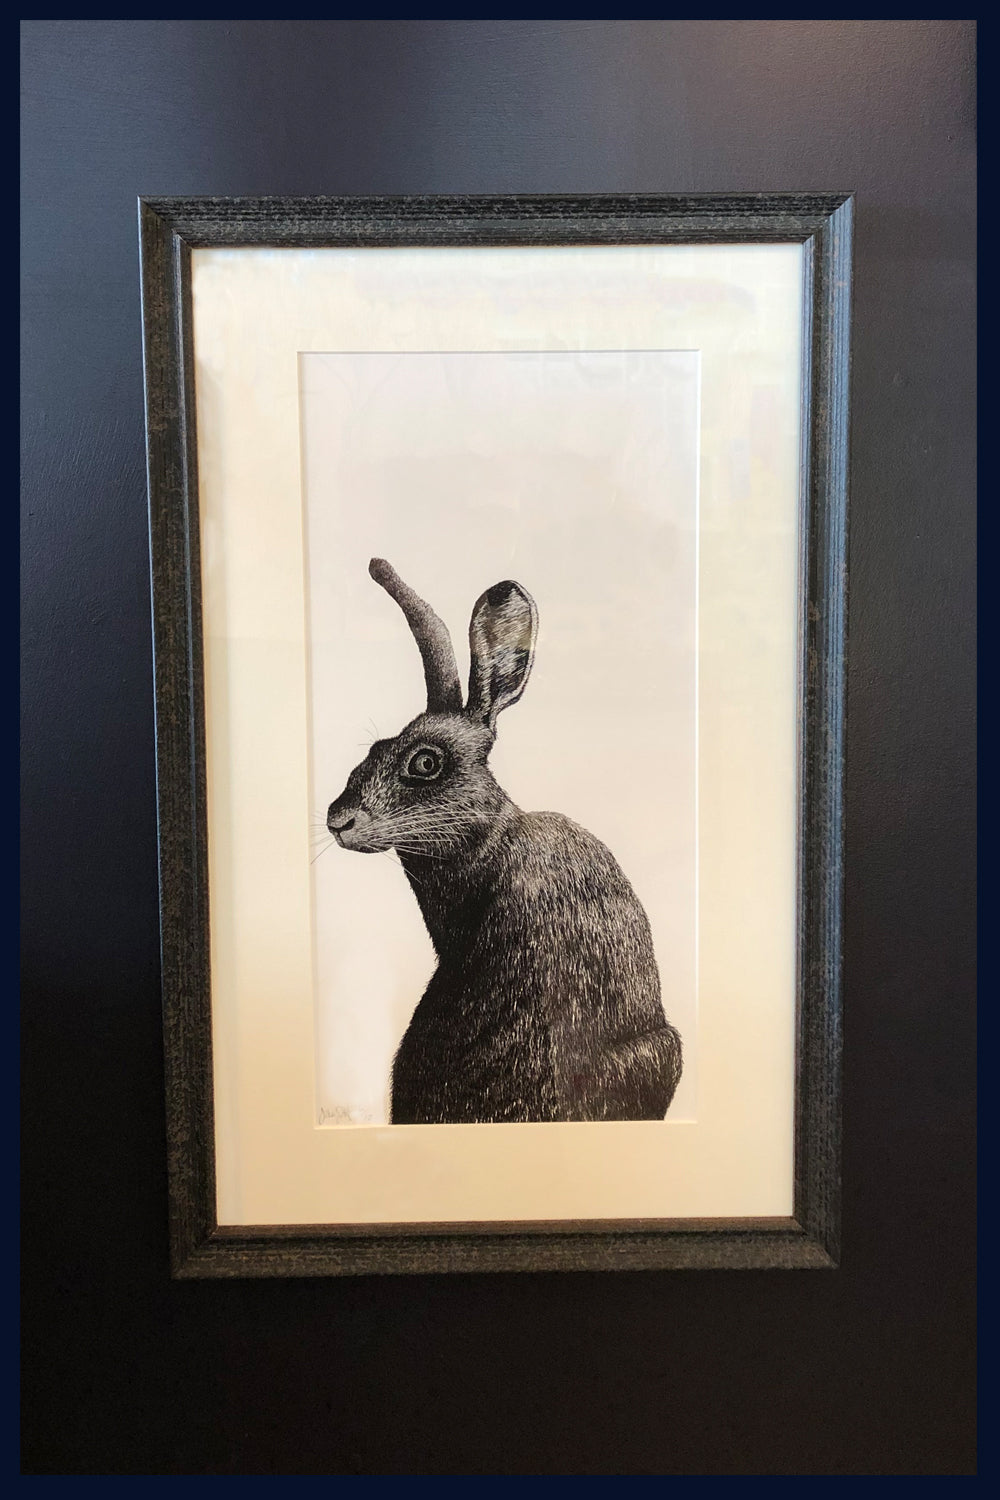 Framed: A Hard Stare: Hare. no.12  Limited Edition of 50 Fine Art Print